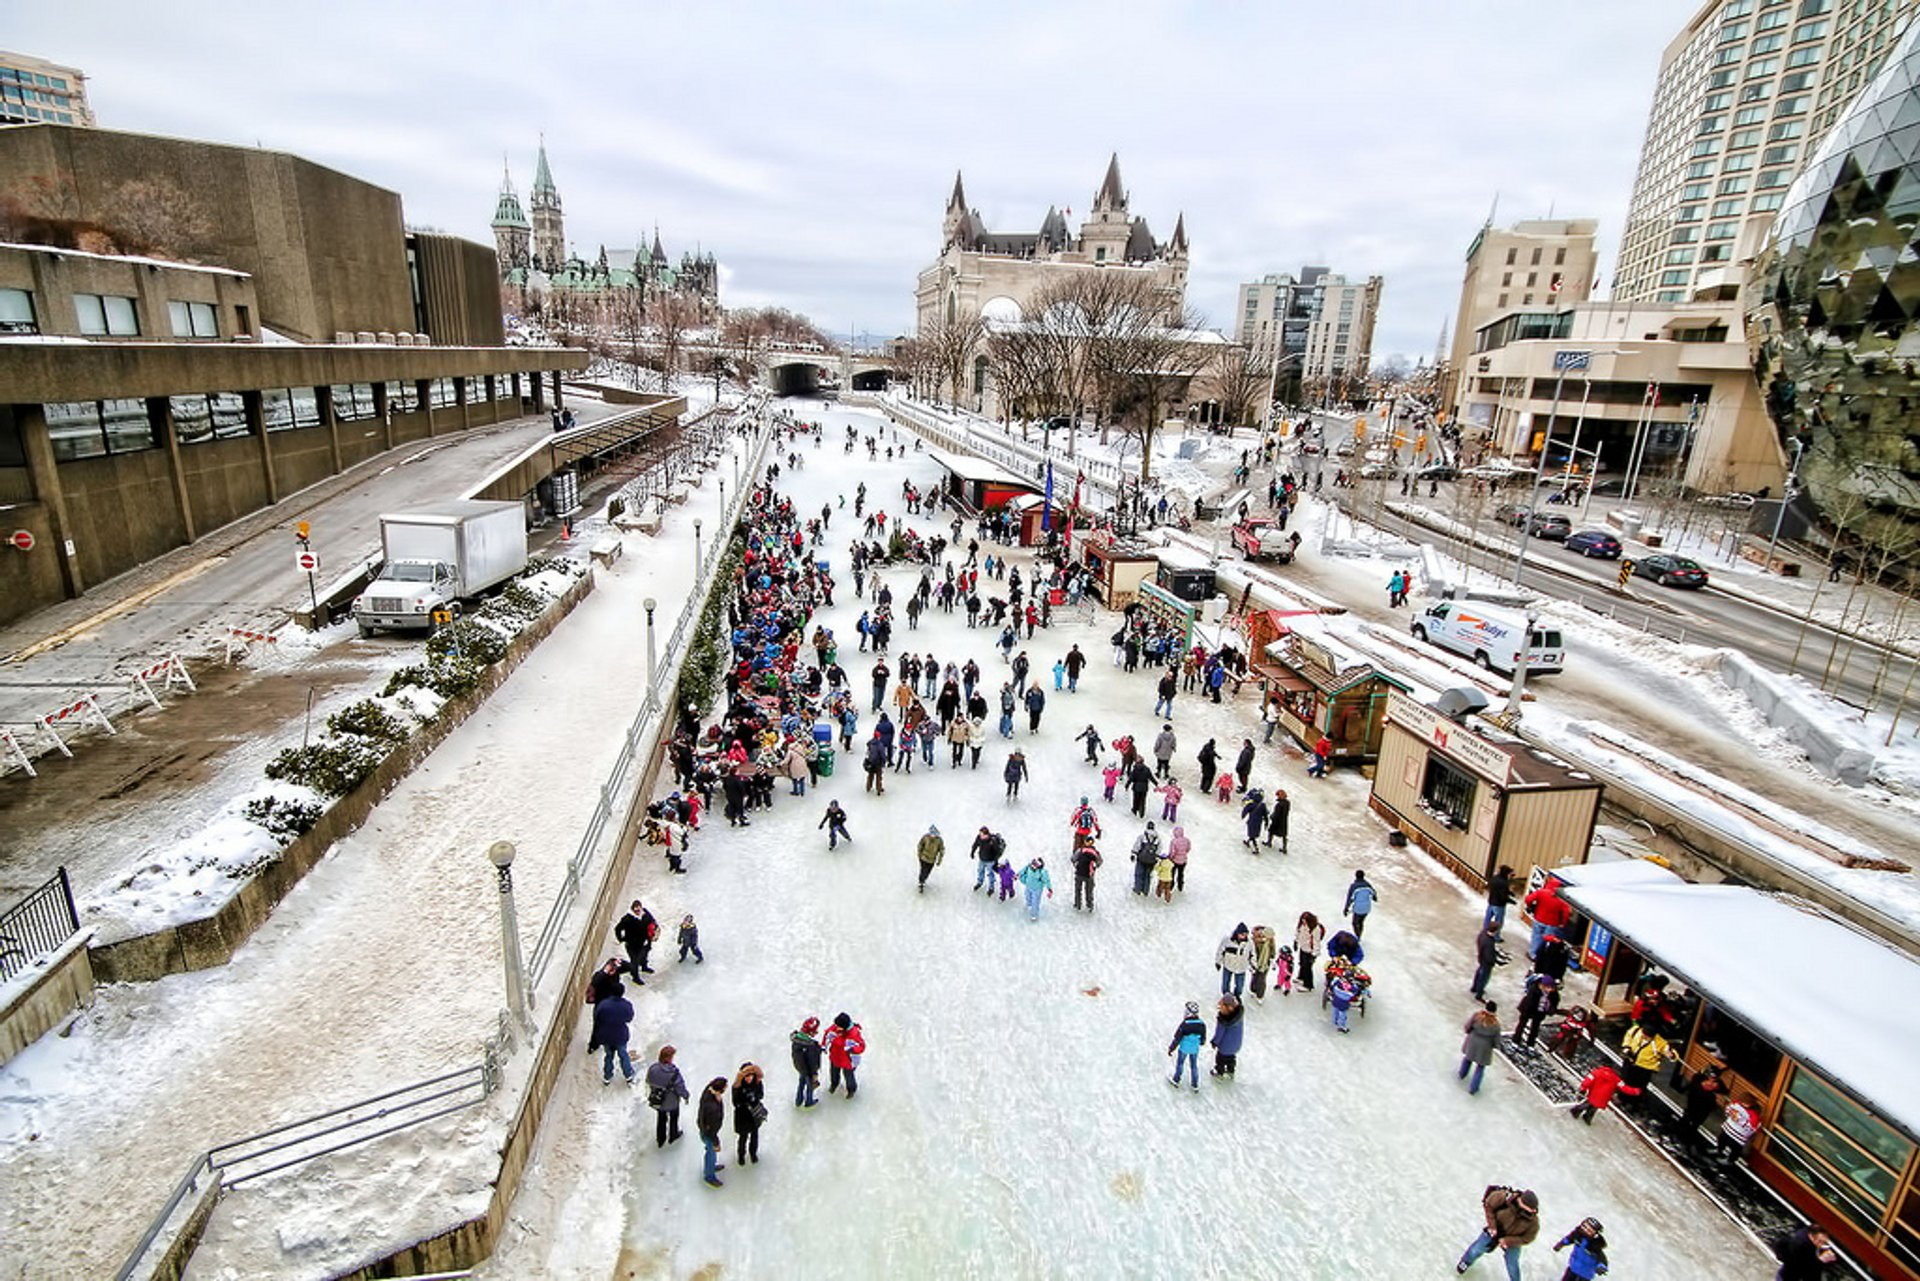 Rideau Canal Skating Season in Ontario 2019 - Best Time